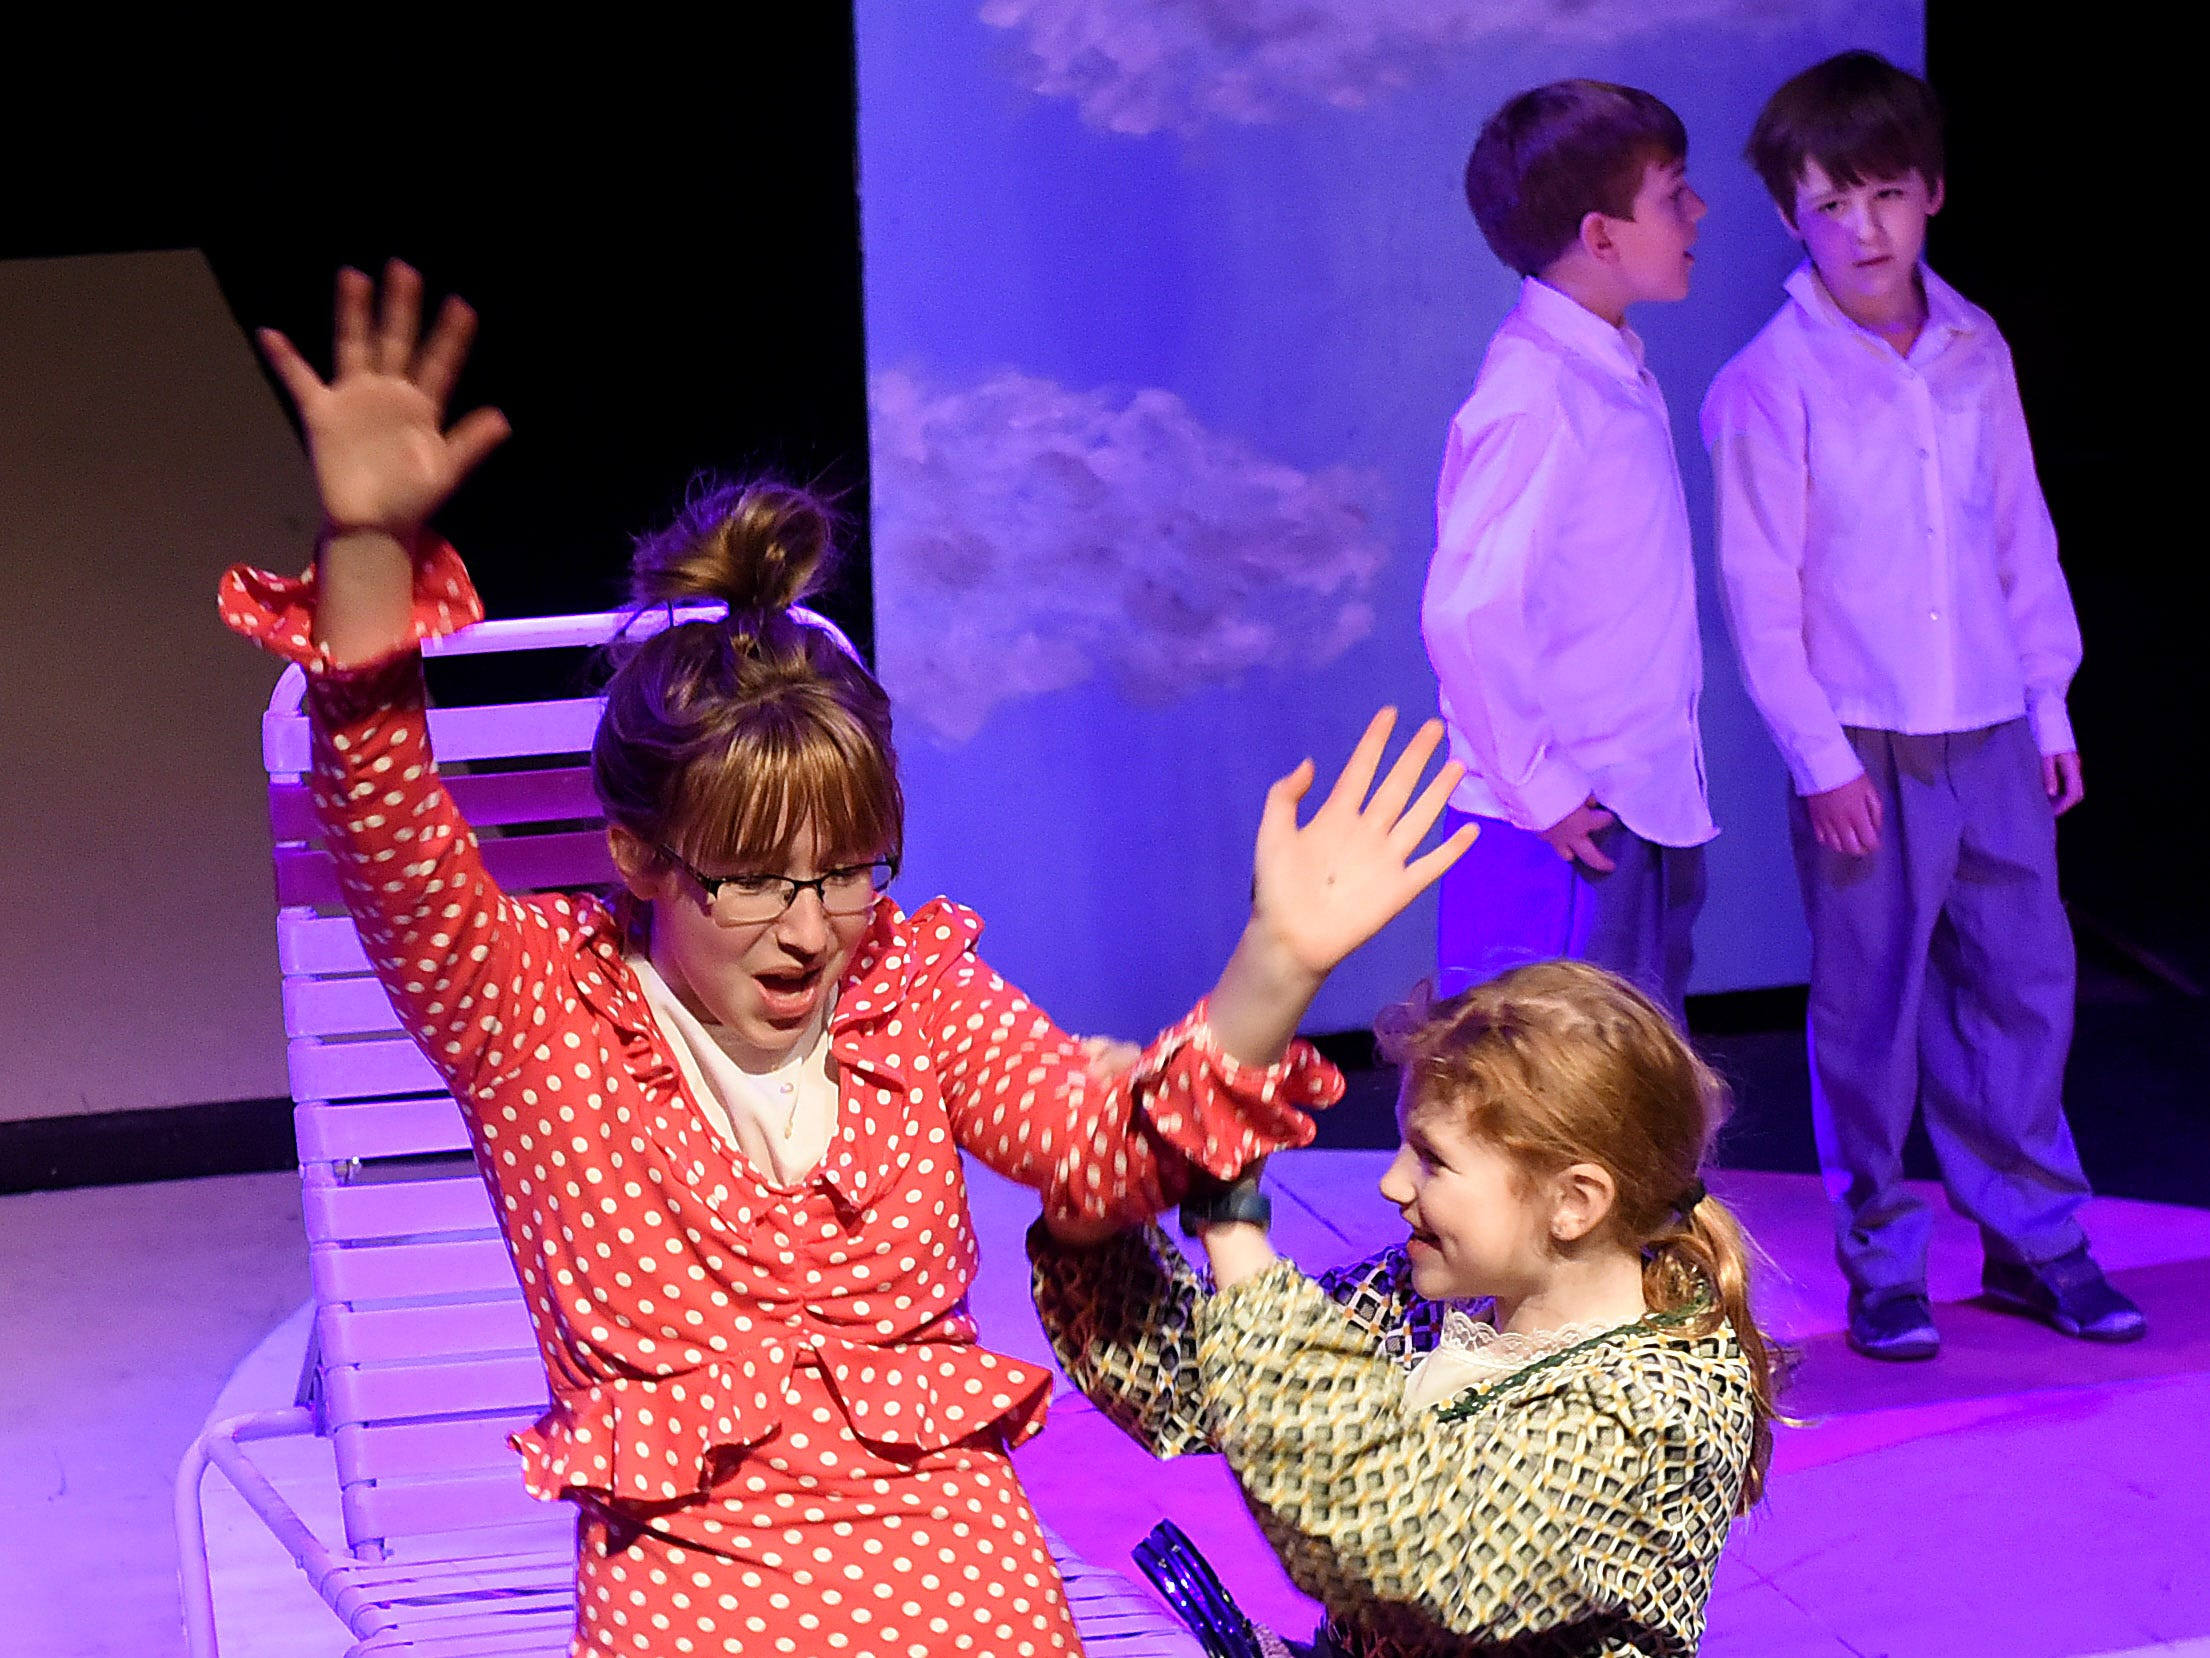 Avamarie Hedrick and Jennalyn Shafer fight for attention on stage as cruel Aunts Spiker and Sponge during a rehearsal for Weathervane Young Artists' Repertory Theatre's production of James and the Giant Peach. The musical, based on the novel by Roald Dahl, begins on Friday, April 5.